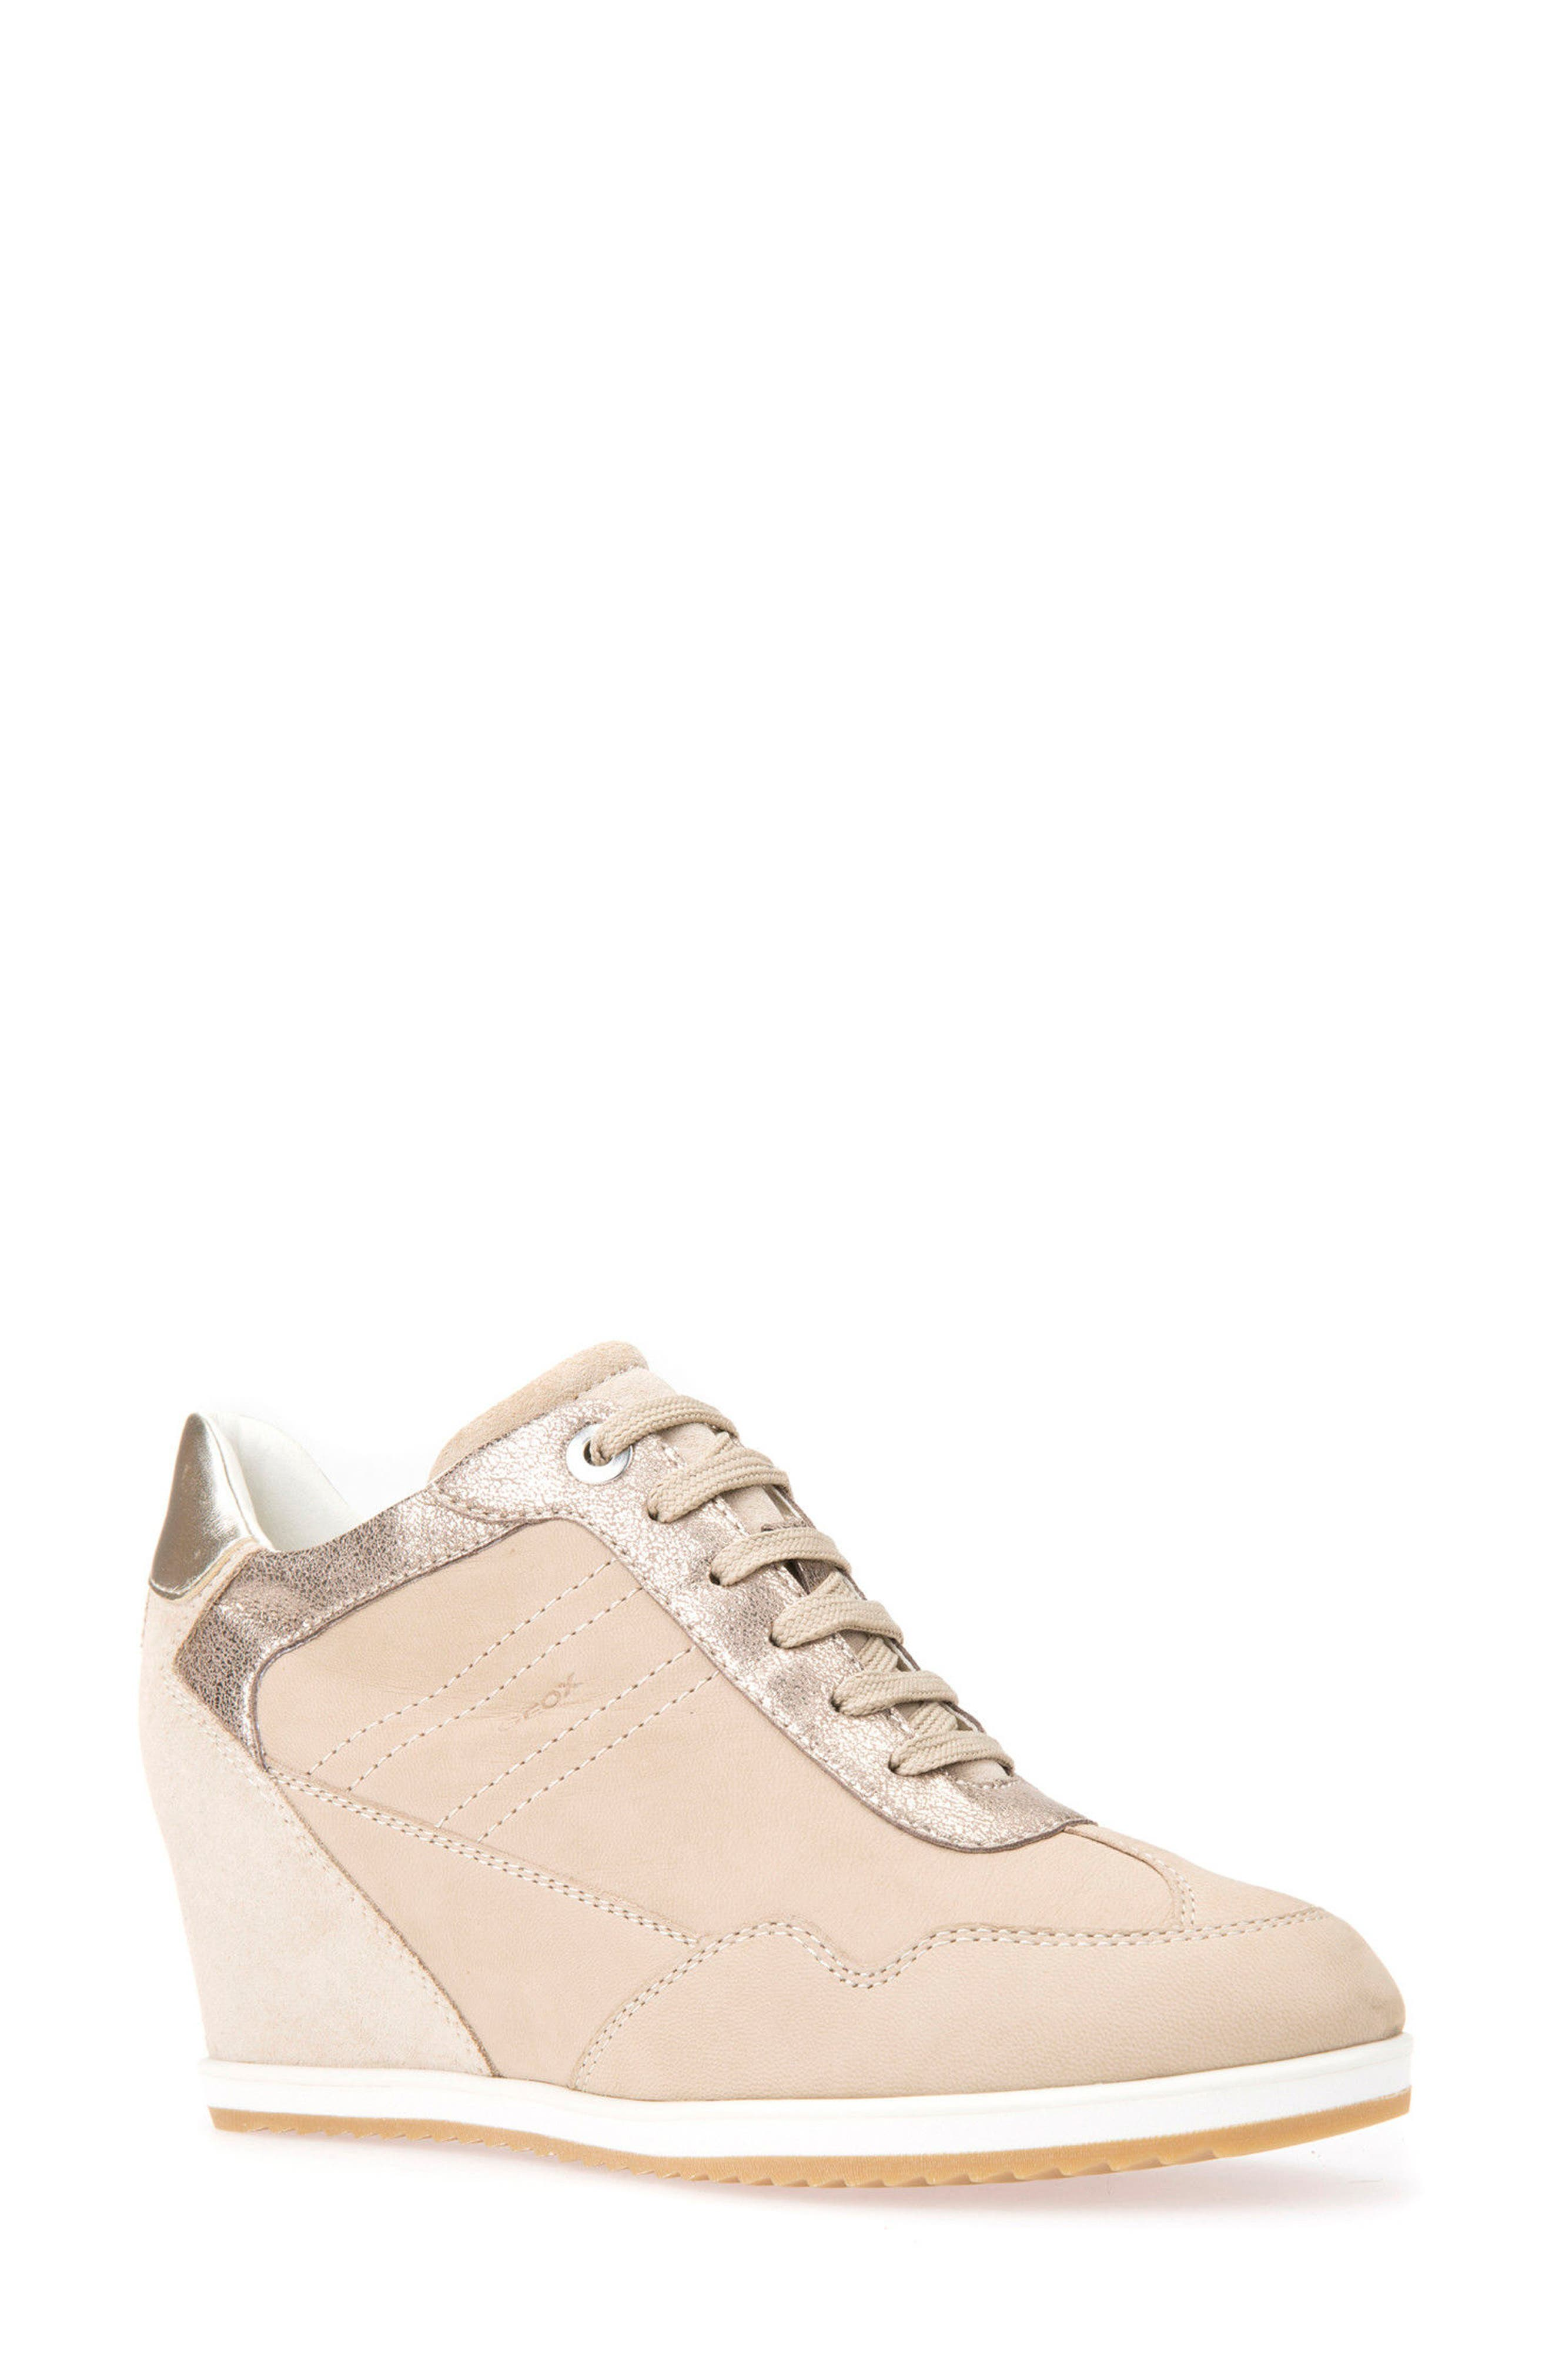 Geox Illusion 34 Wedge Sneaker (Women)